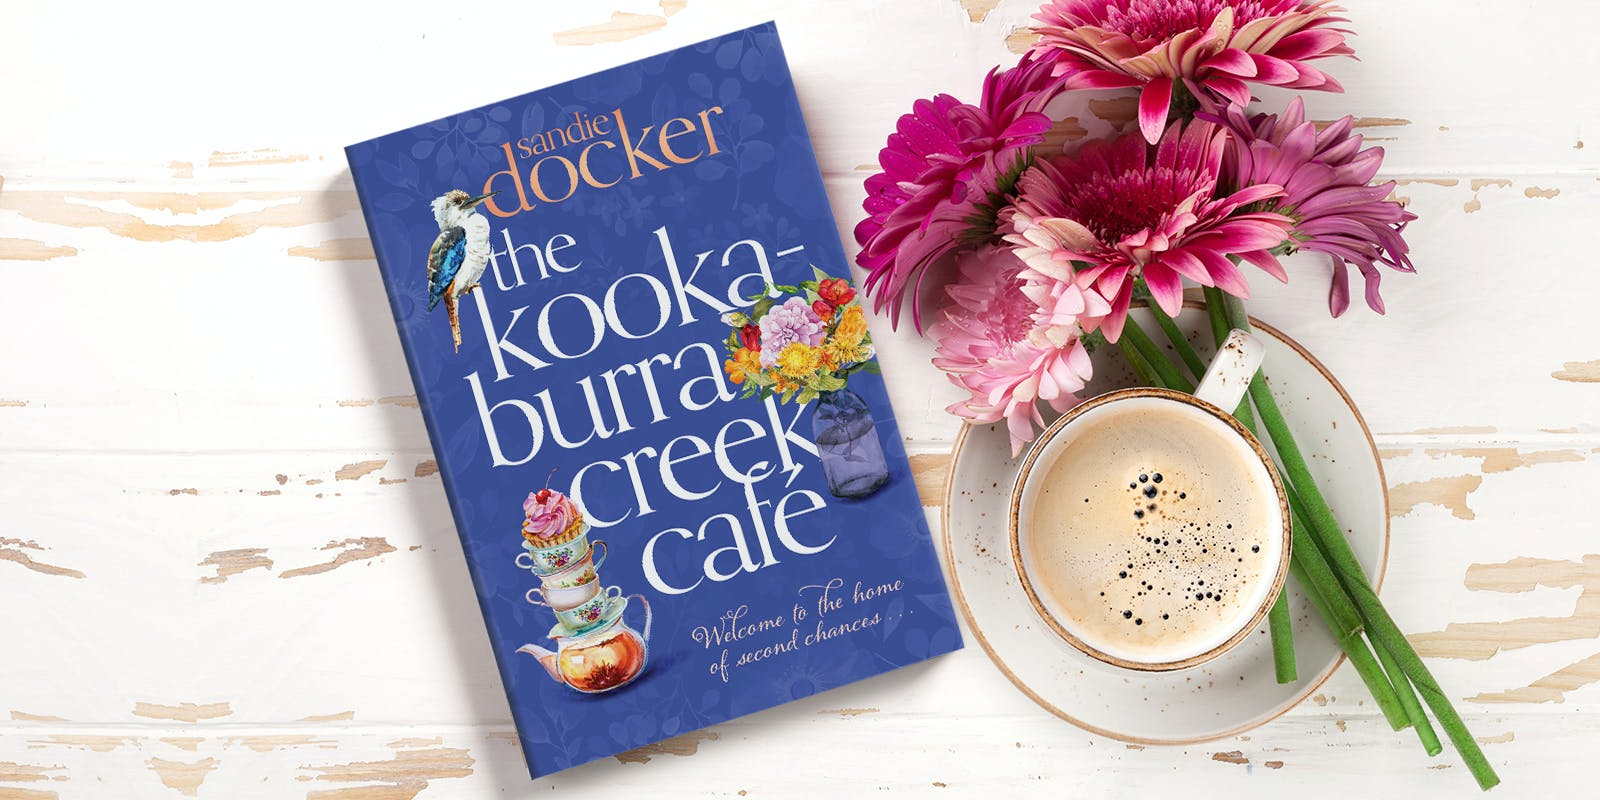 The Kookaburra Creek Café book club notes